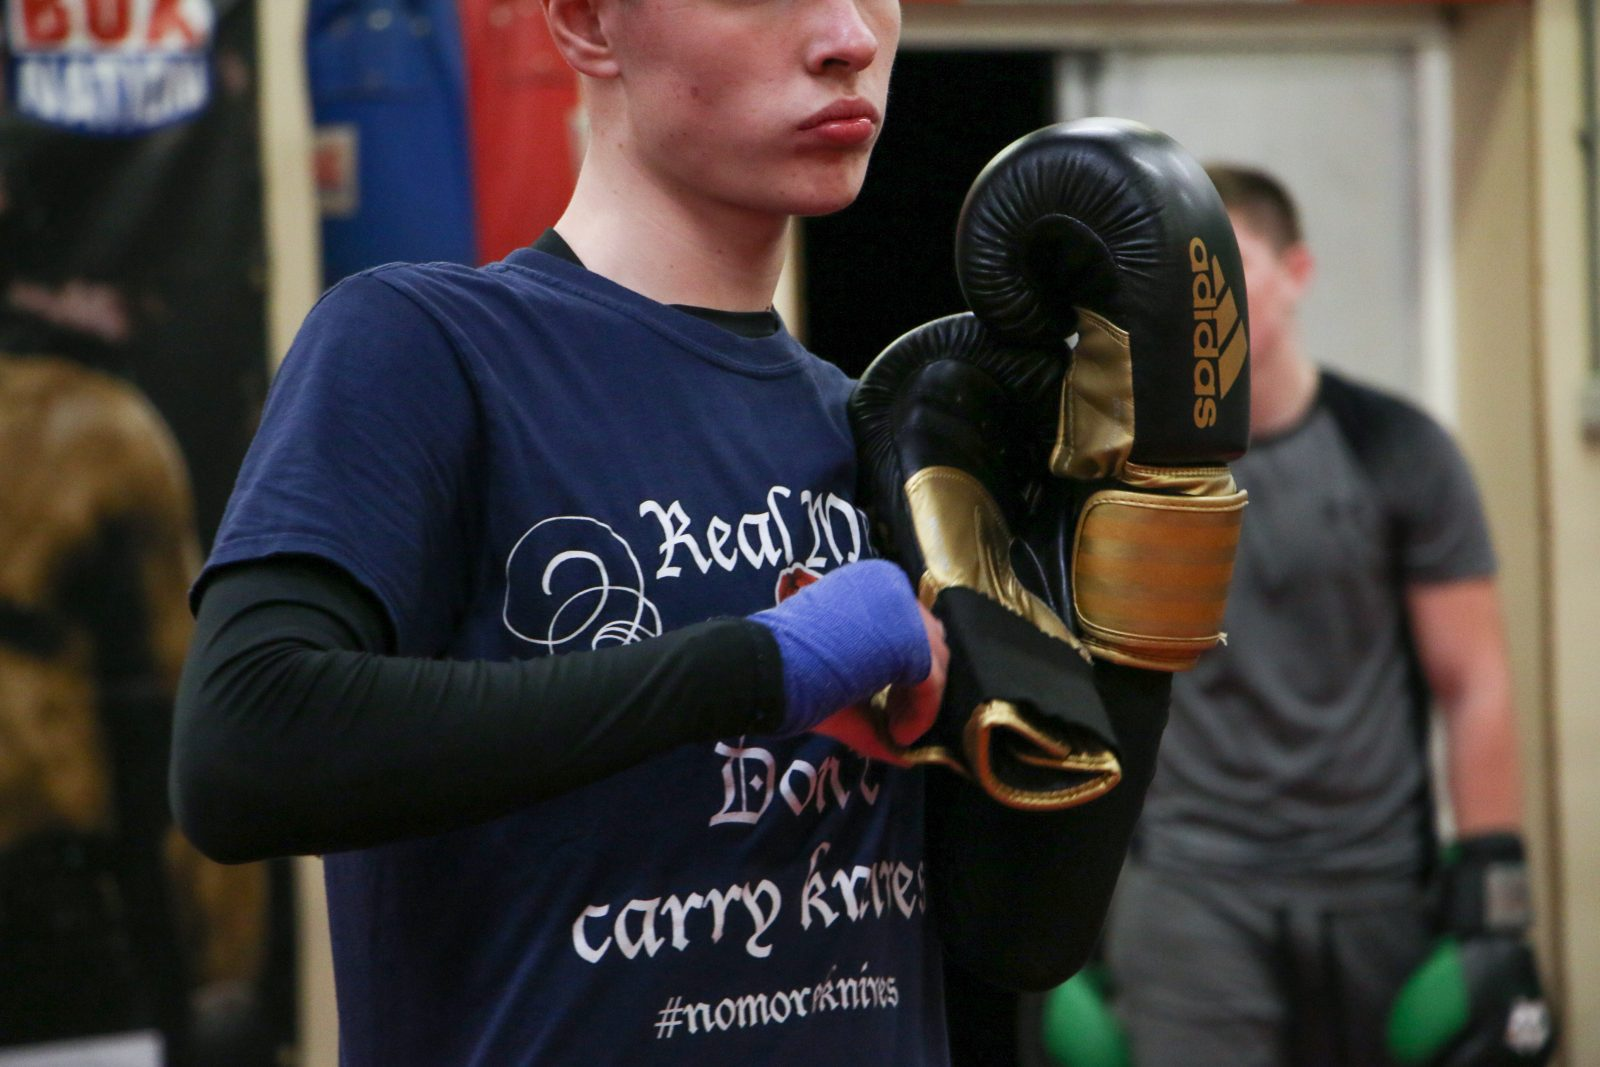 A person wearing a navy t-shirt and black long sleeved top pulls on a pair of black and gold boxing gloves.